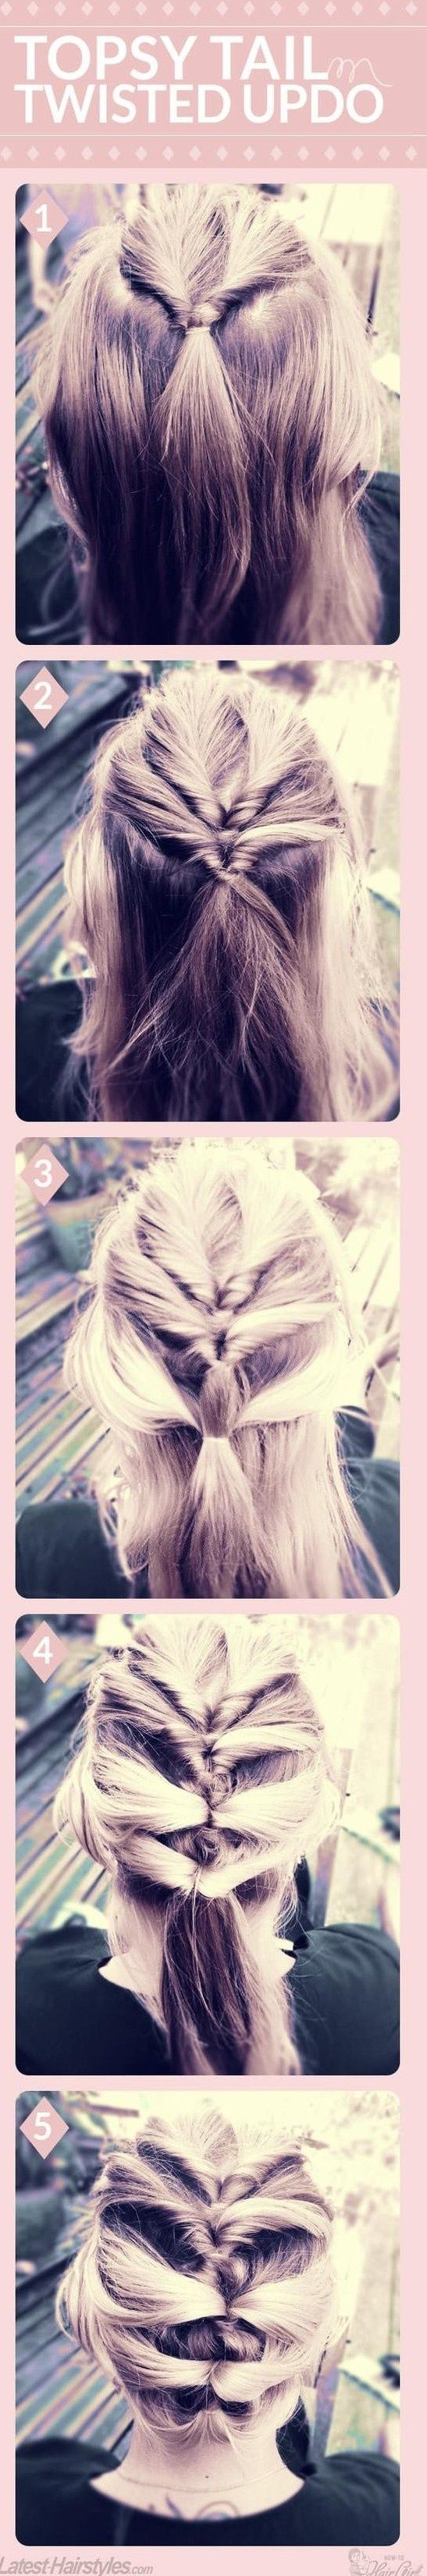 Short on time but wanting to craft a cute hairstyle? While you may not always have time for a gorgeous blowout or fancy updo, there aremany different ways you can style your hair that take 10 minutes or less. Check out five more easy tutorials we scouted just for you! Missed our first roundup? Head here! PERFECT PONY FISHTAIL MERMAID BRAID NEW WEAVE TOPSY TAIL TWISTED UPDO BEACH WAVES (click forinstructions) Which is your favorite style, girls? Do you ever use online DIY tutorials to do…